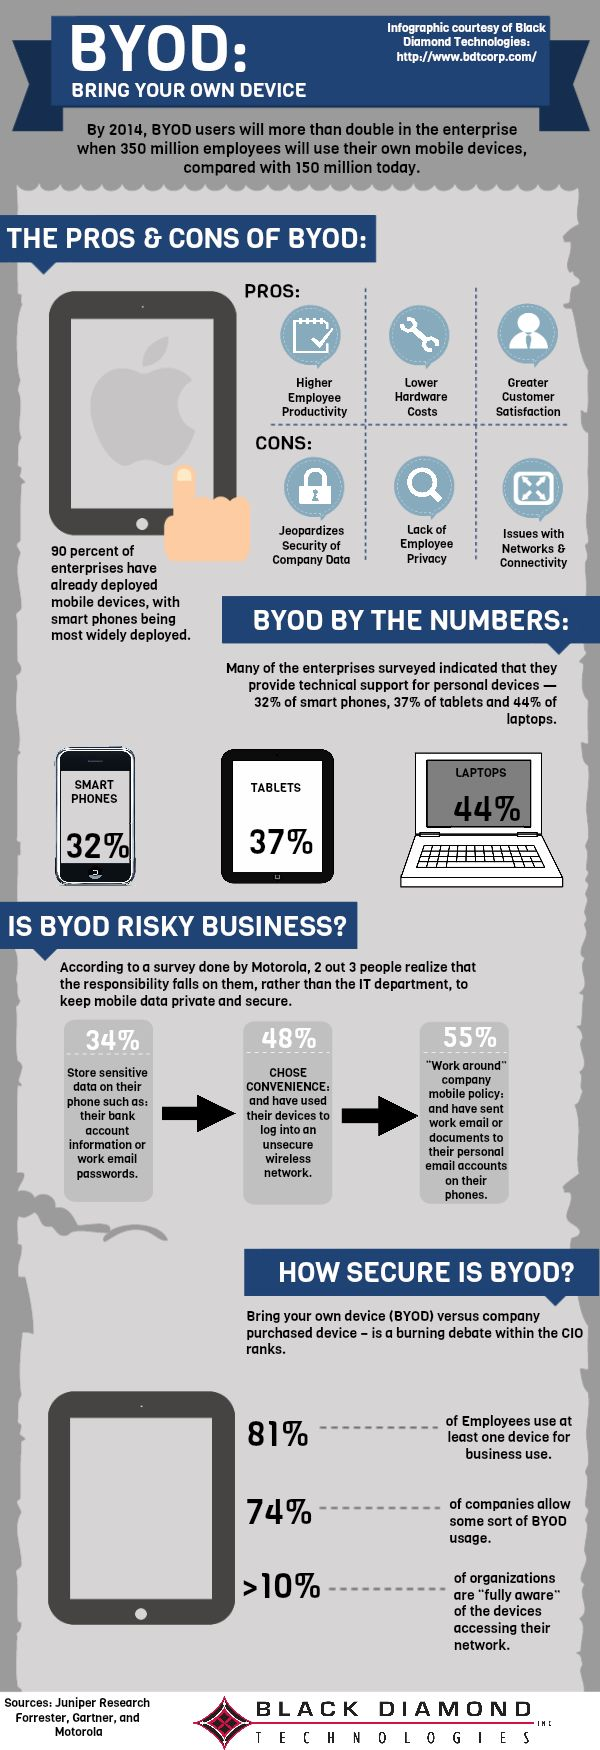 BYOD Infographic - security in the workplace